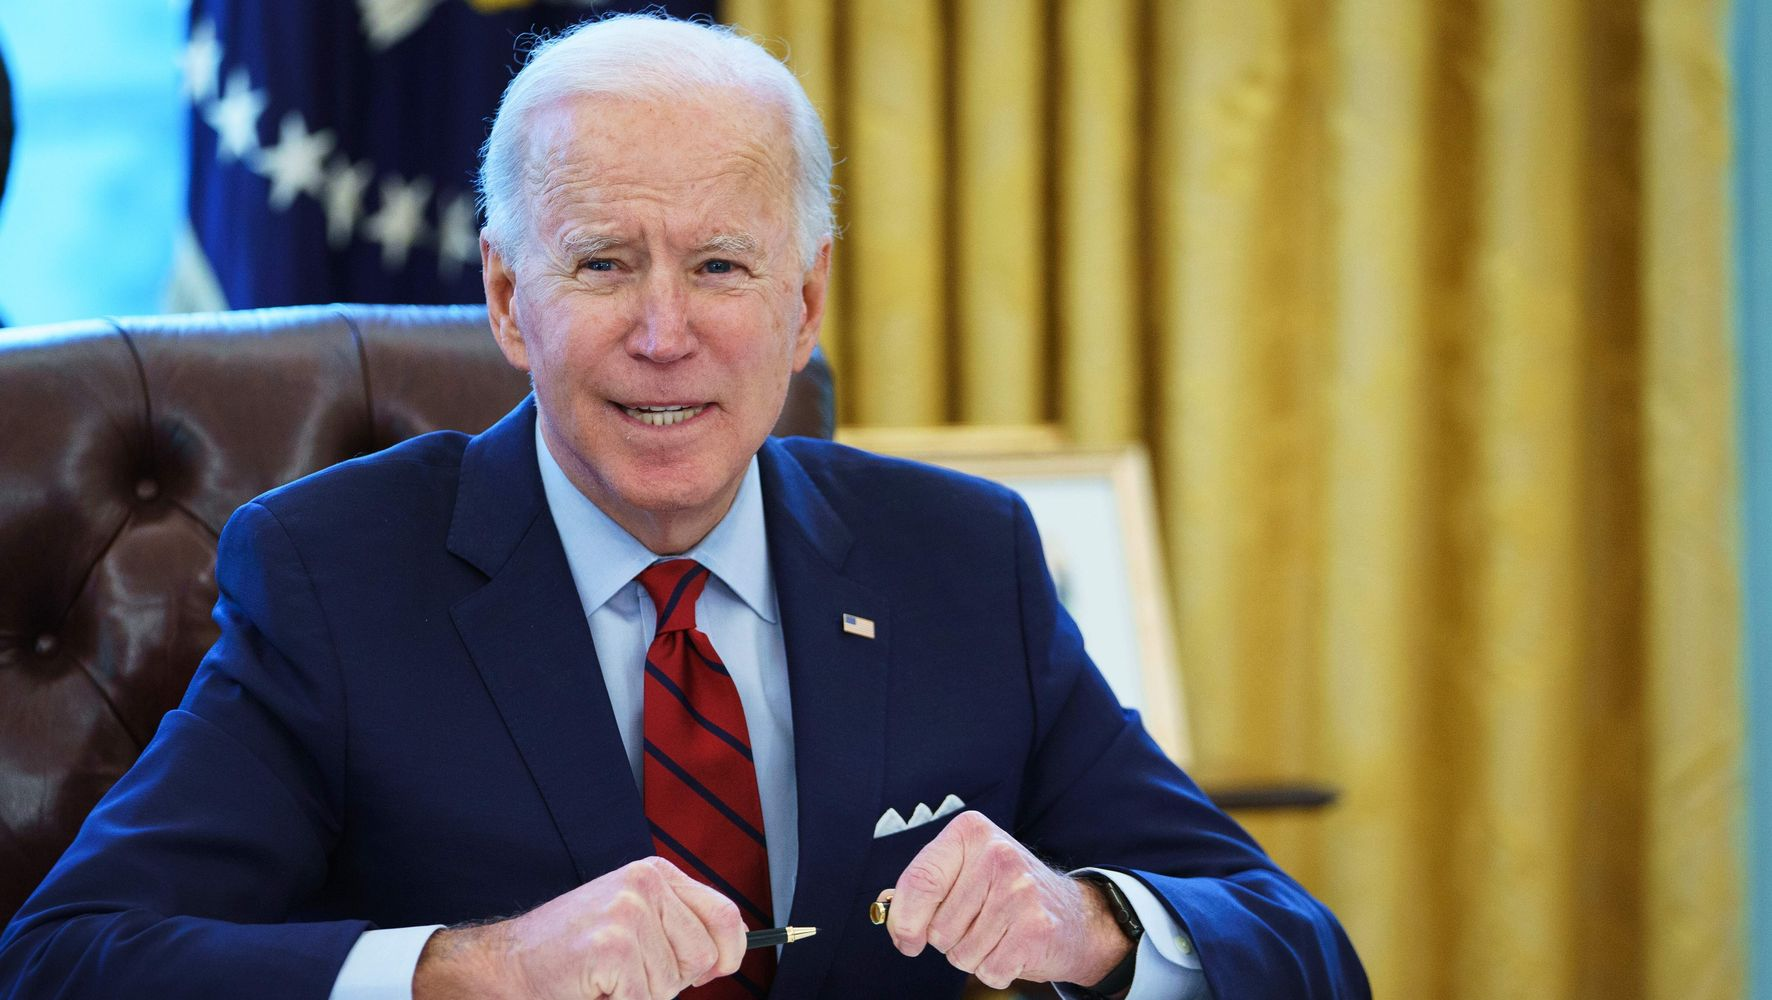 Joe Biden's Administration Is Starting To Look Like A Mullet